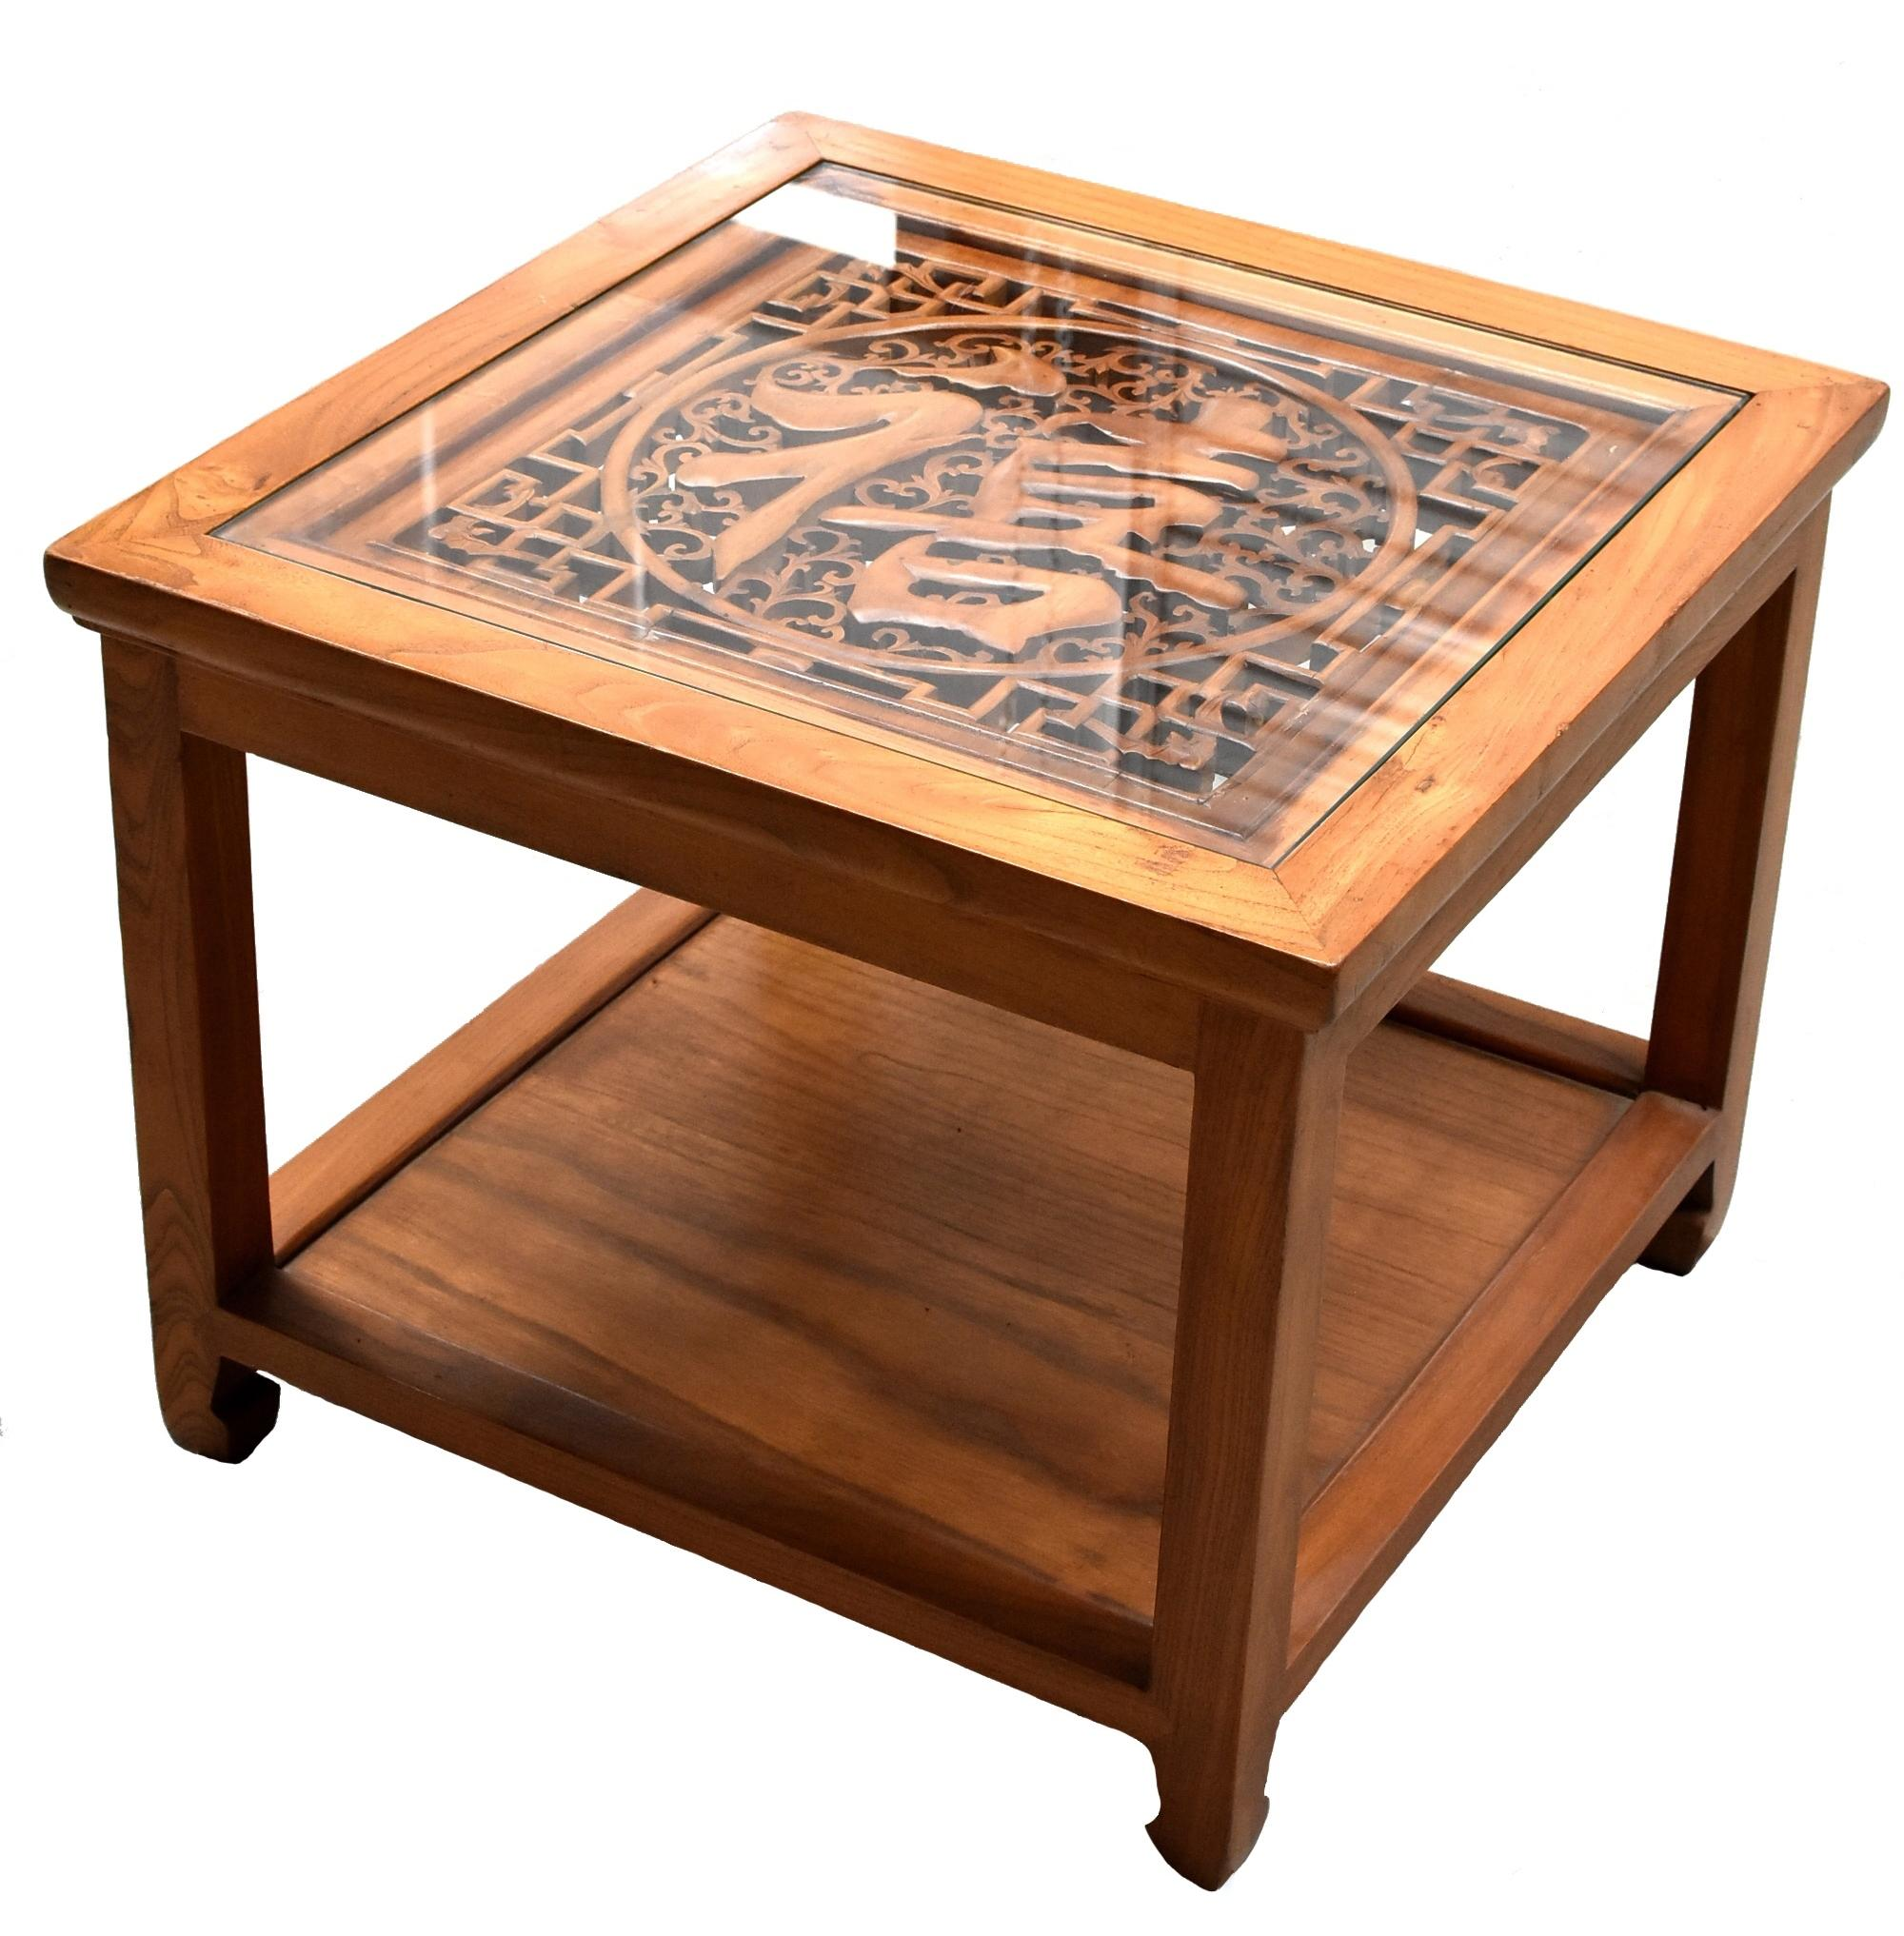 Chinese Solid Wood Coffee Table, Glass Side Table With Wood Carving